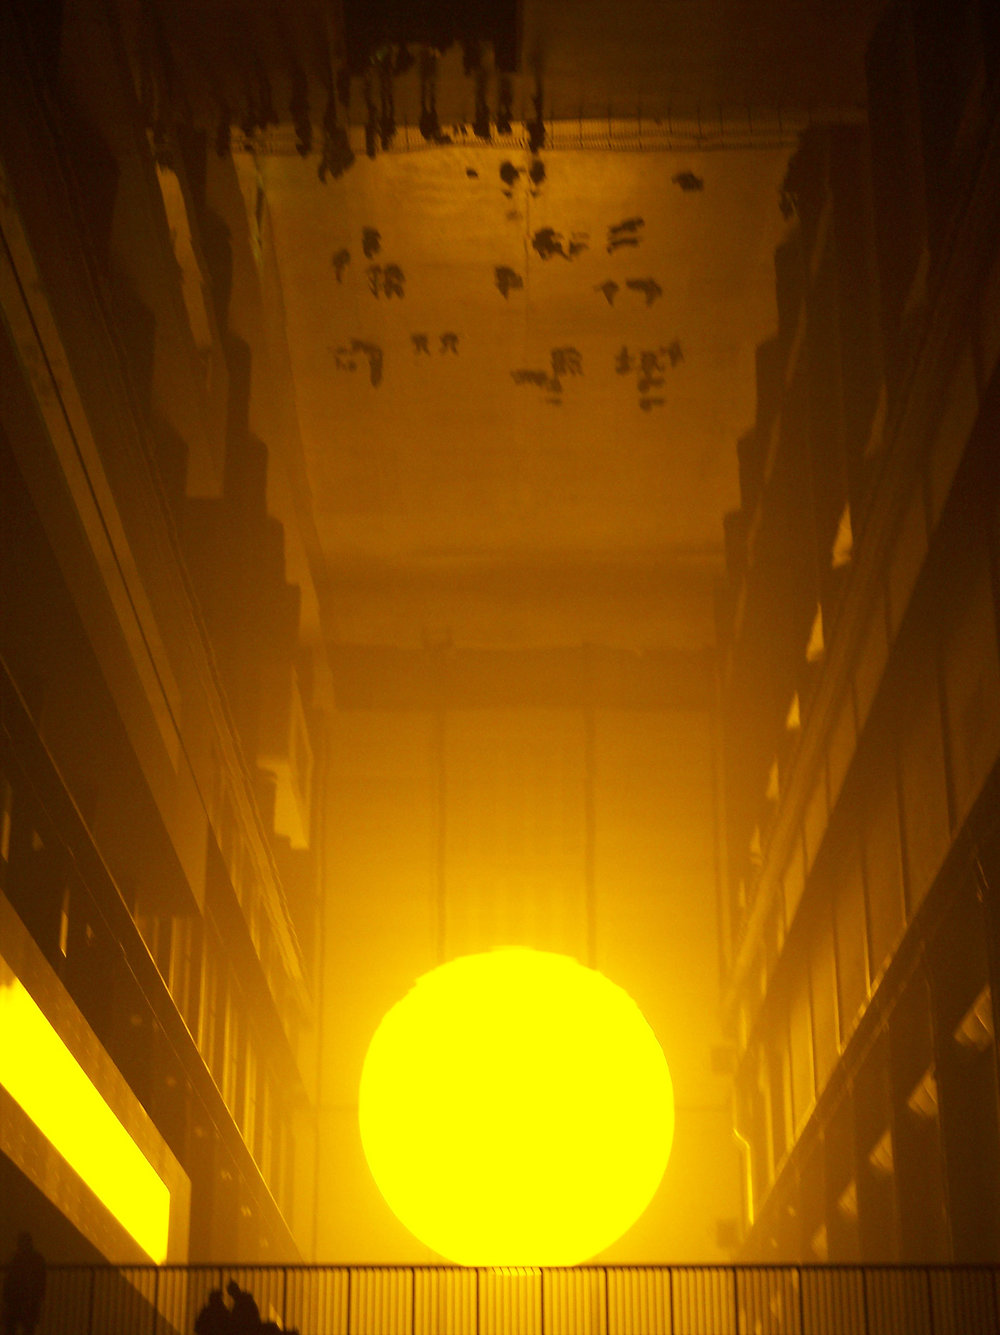 2004_01-08_Olafur-Eliasson_The-Weather-Project-[Tate-Modern]_12_Photograph_James-Bulley.jpg